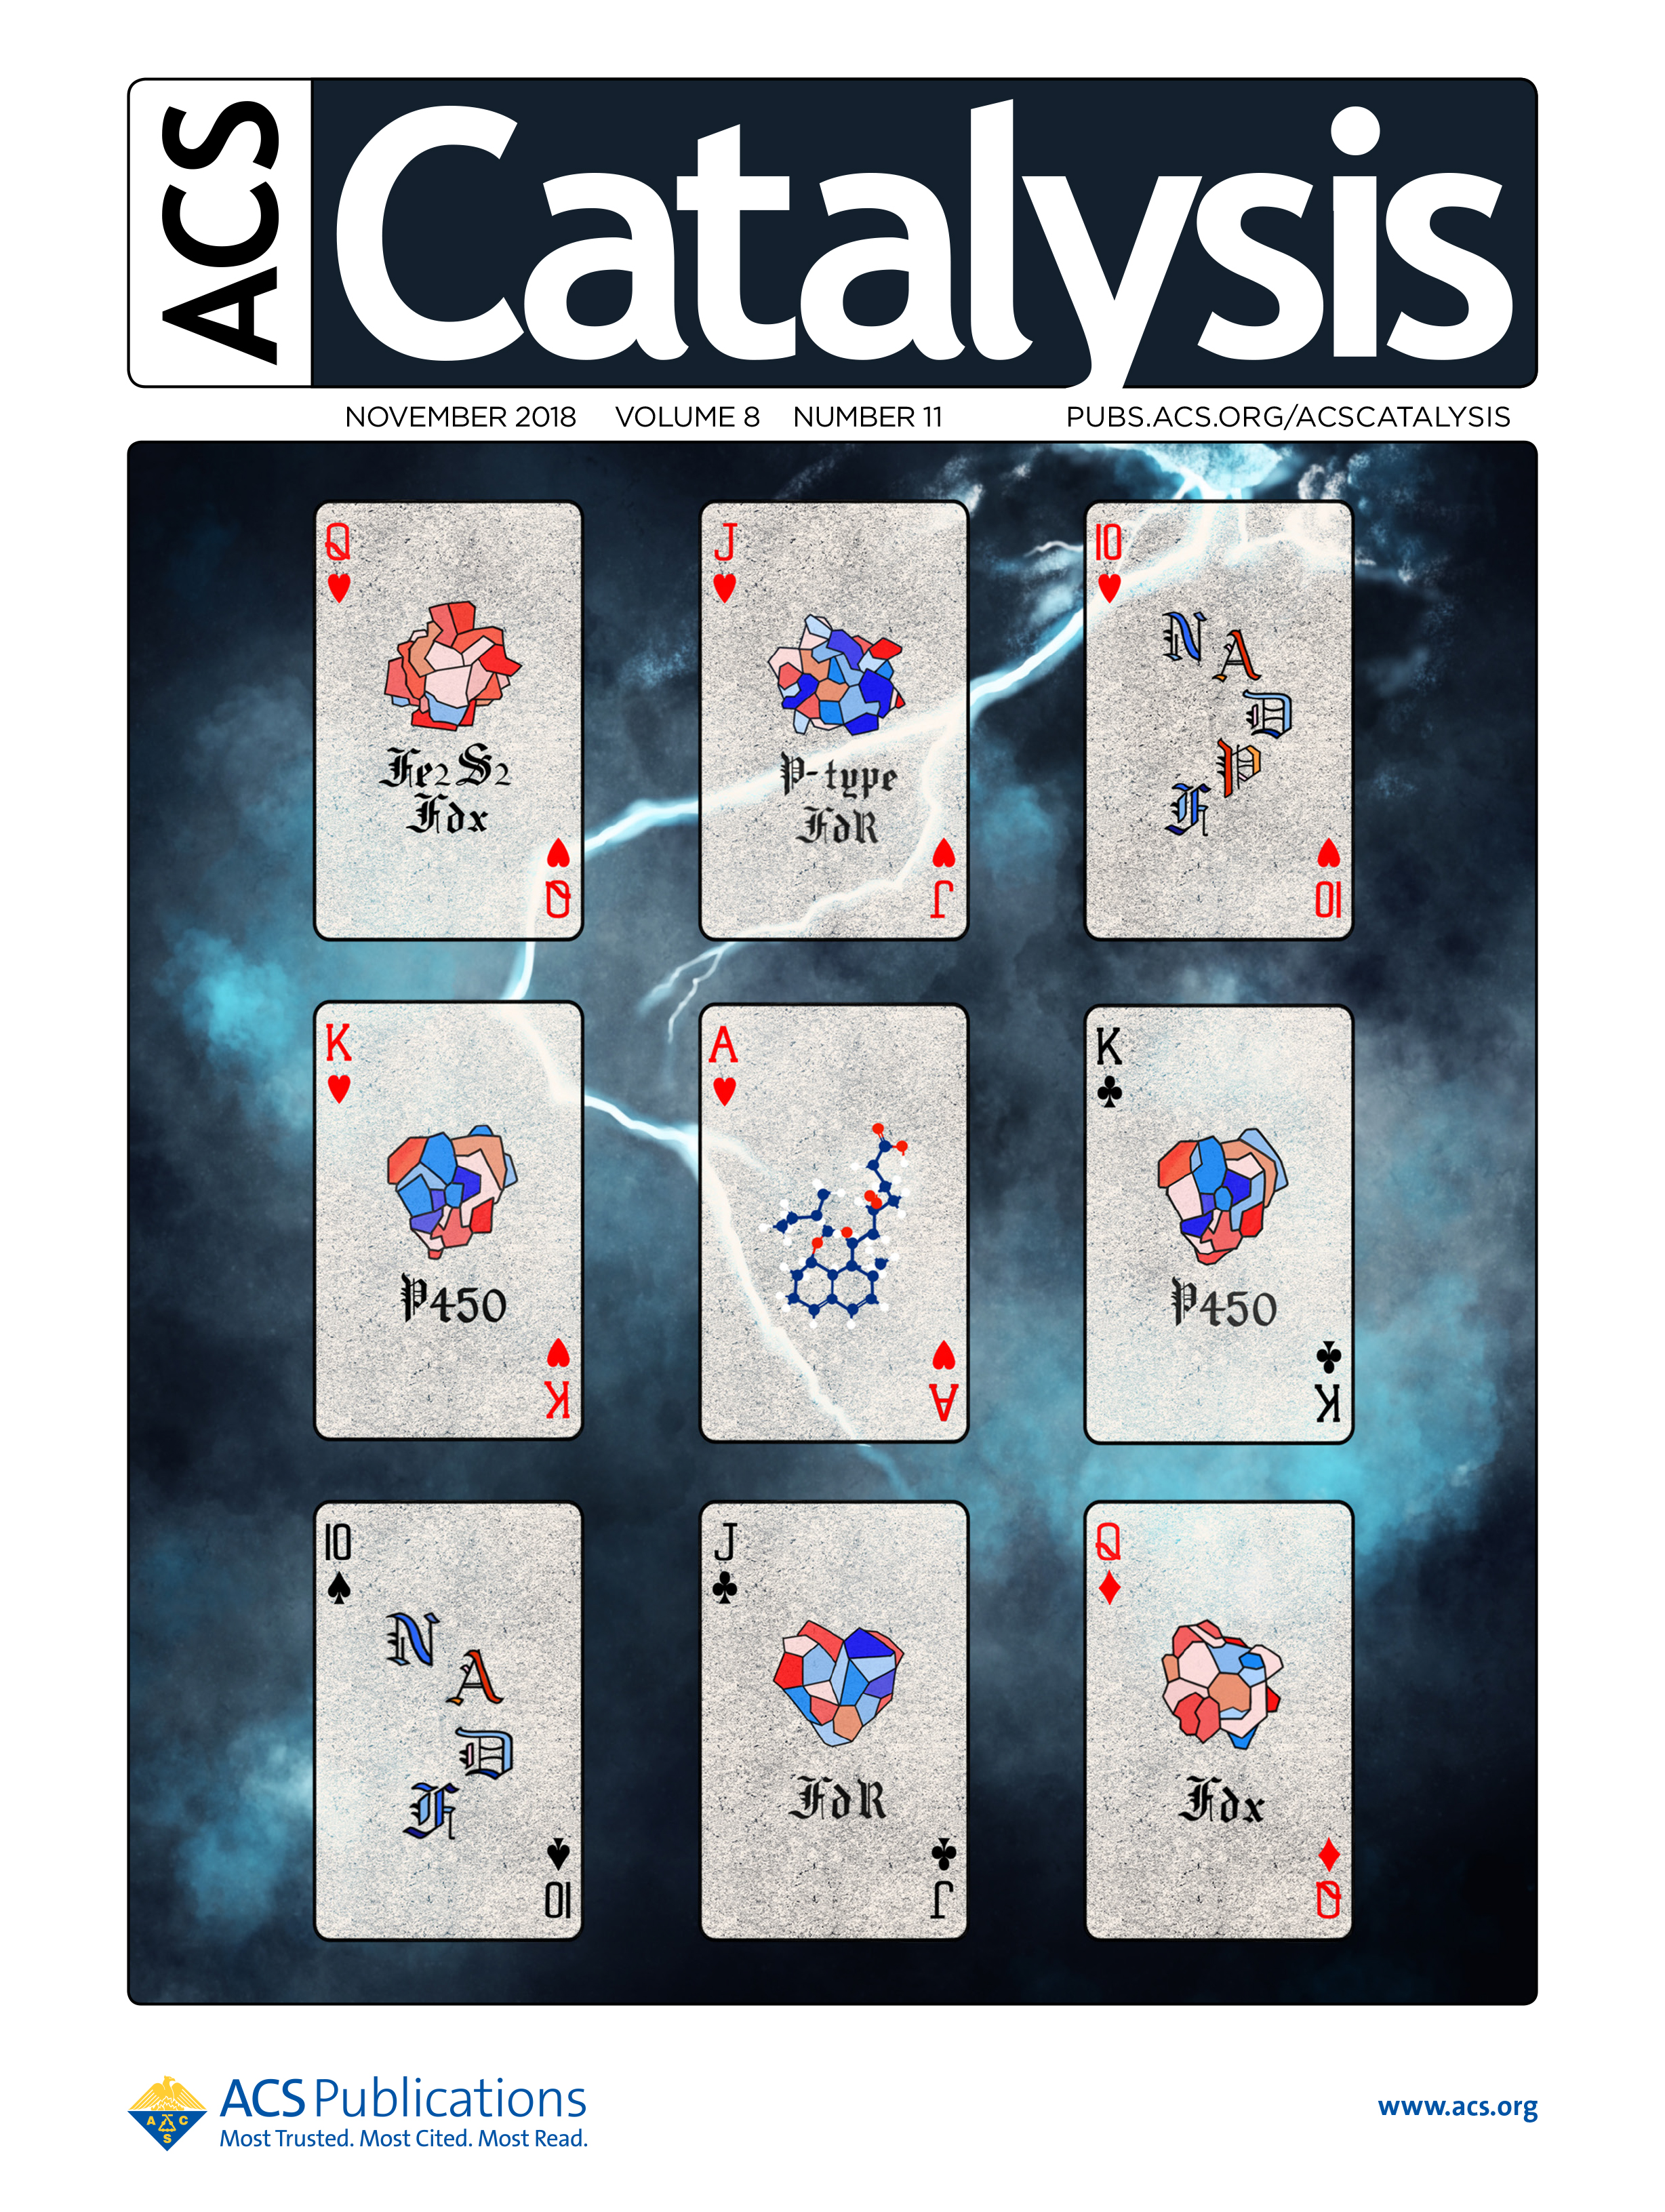 Enantioselective α-Allylation of Aryl Acetic Acid Esters via C1-Ammonium Enolate Nucleophiles: Identification of a Broadly Effective Palladium Catalyst for Electron-Deficient Electrophiles.